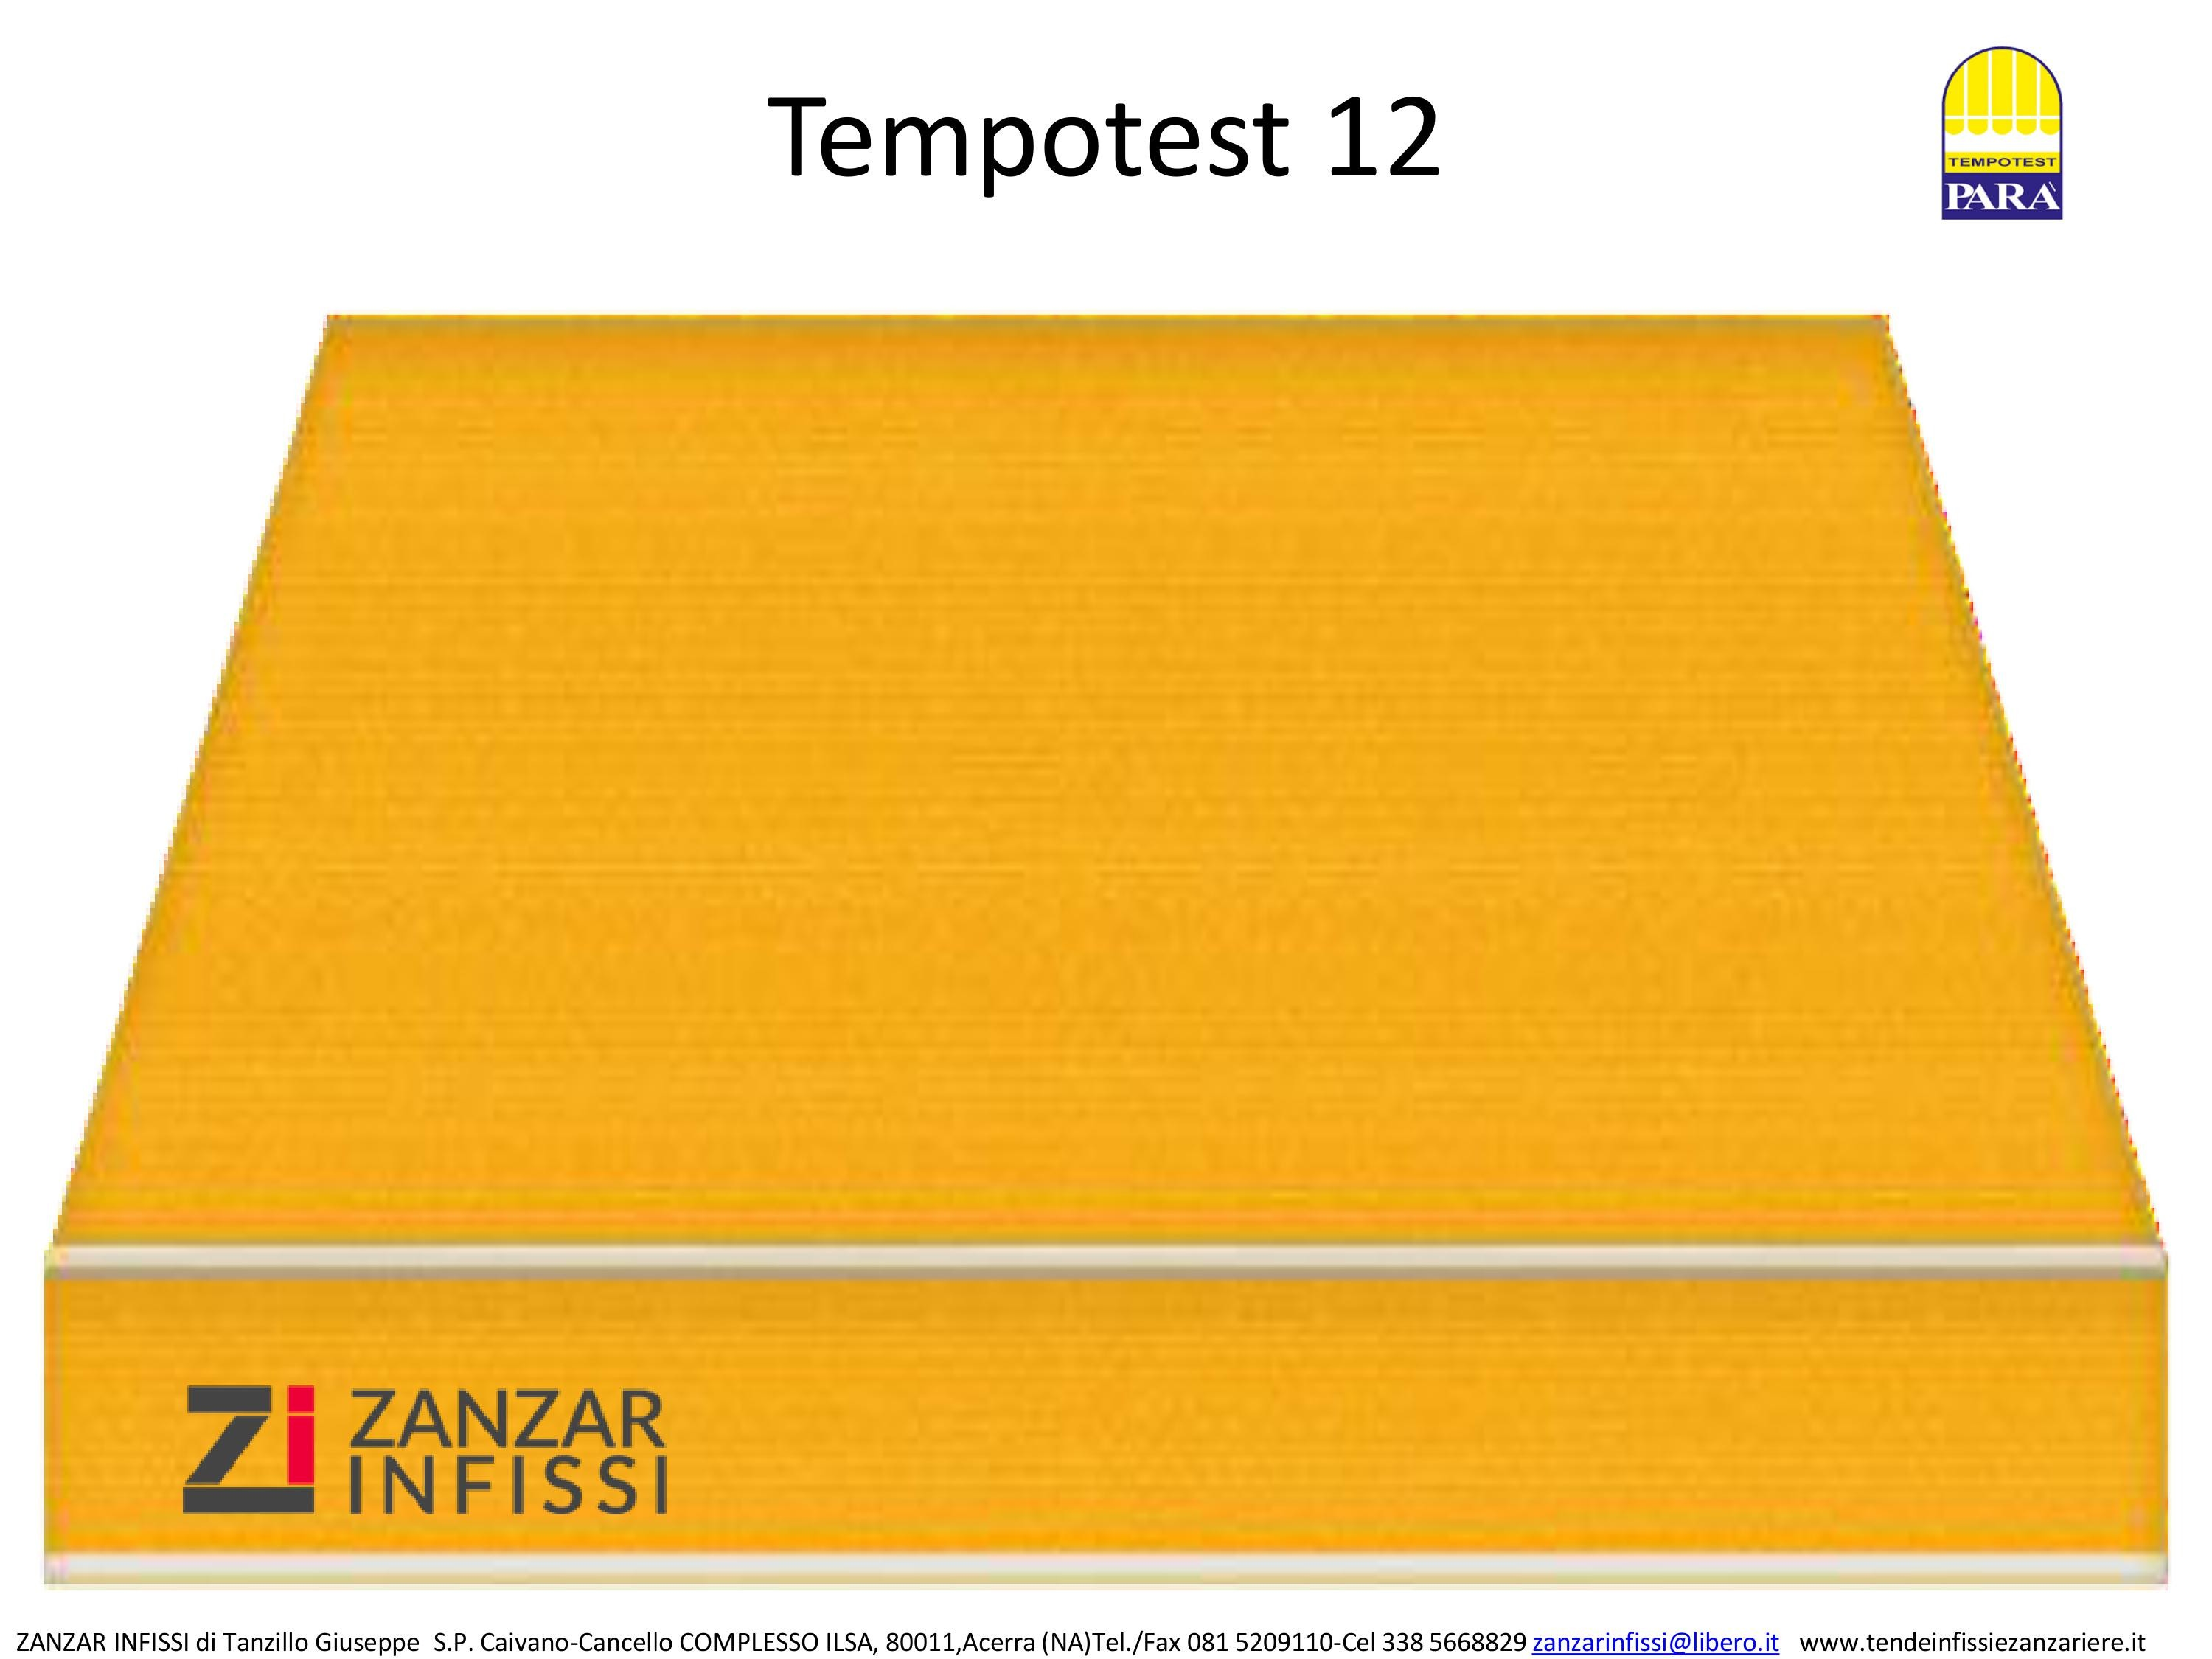 Tempotest 12